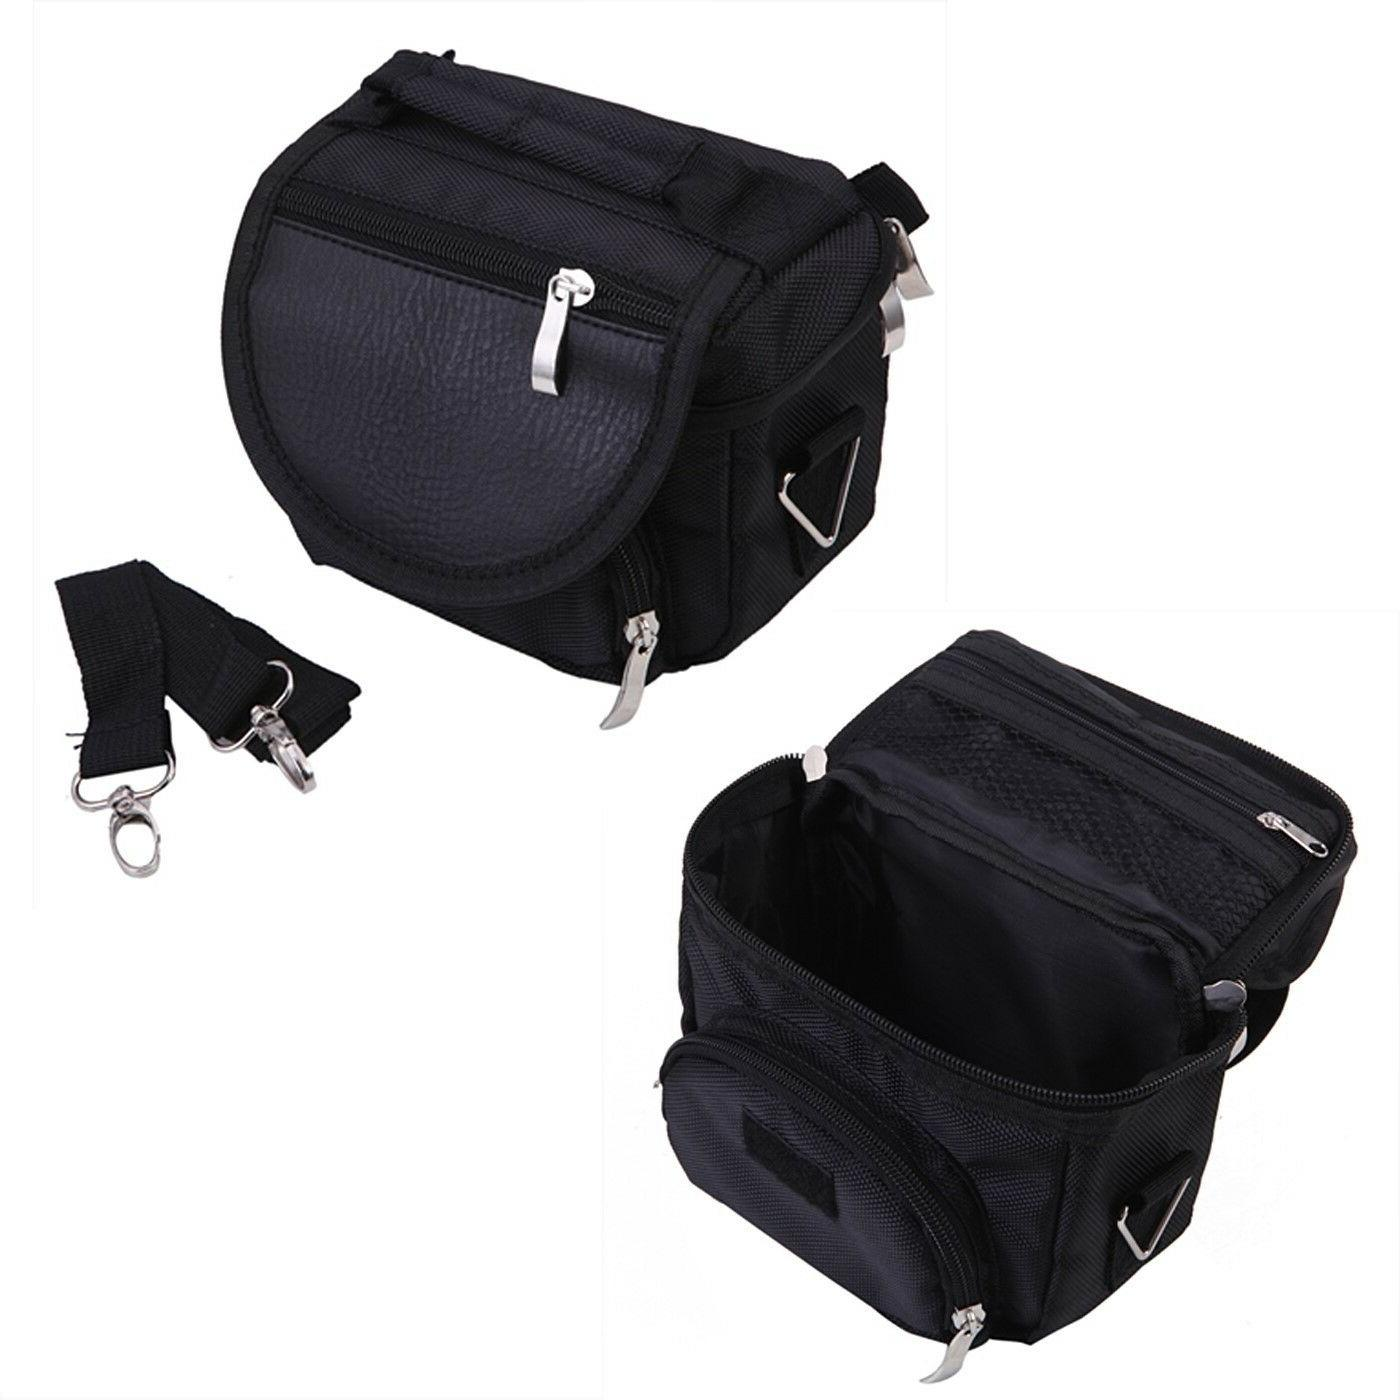 Universal Travel Bag Carrying Case for Nintendo DSi/DS Lite/